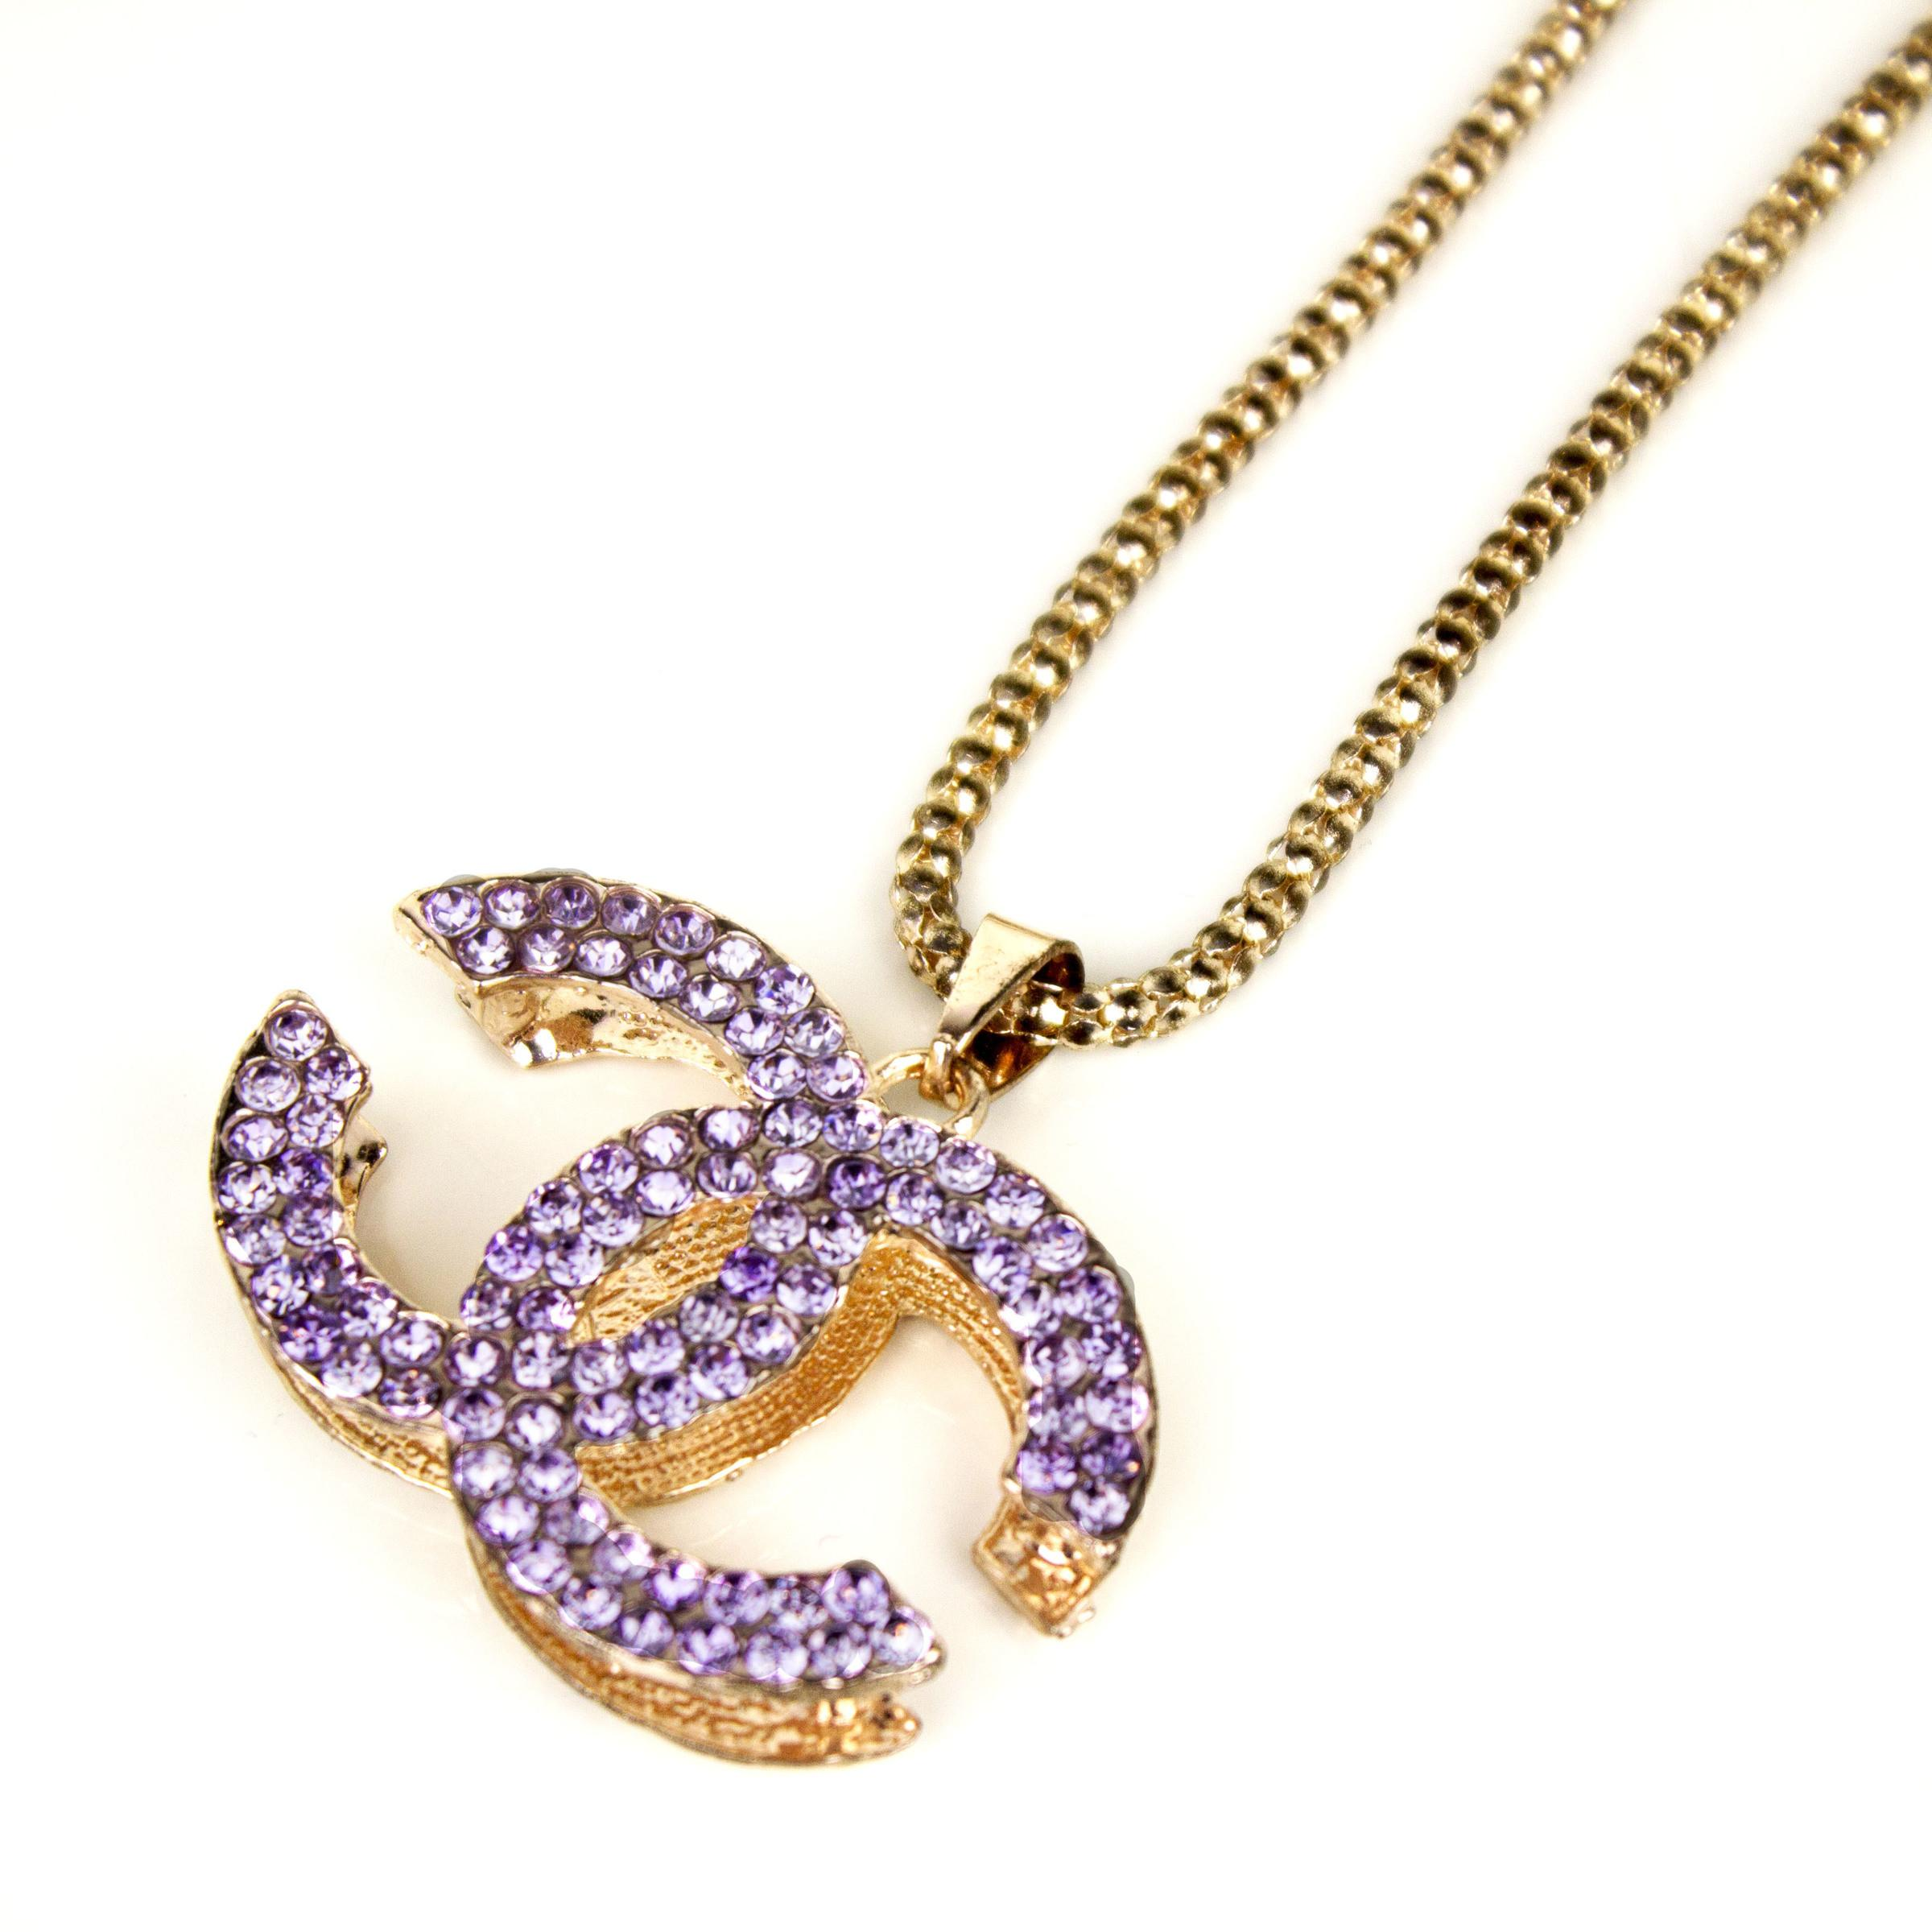 Inspired Chanel Necklace Ladies Room Fashion Malaysia